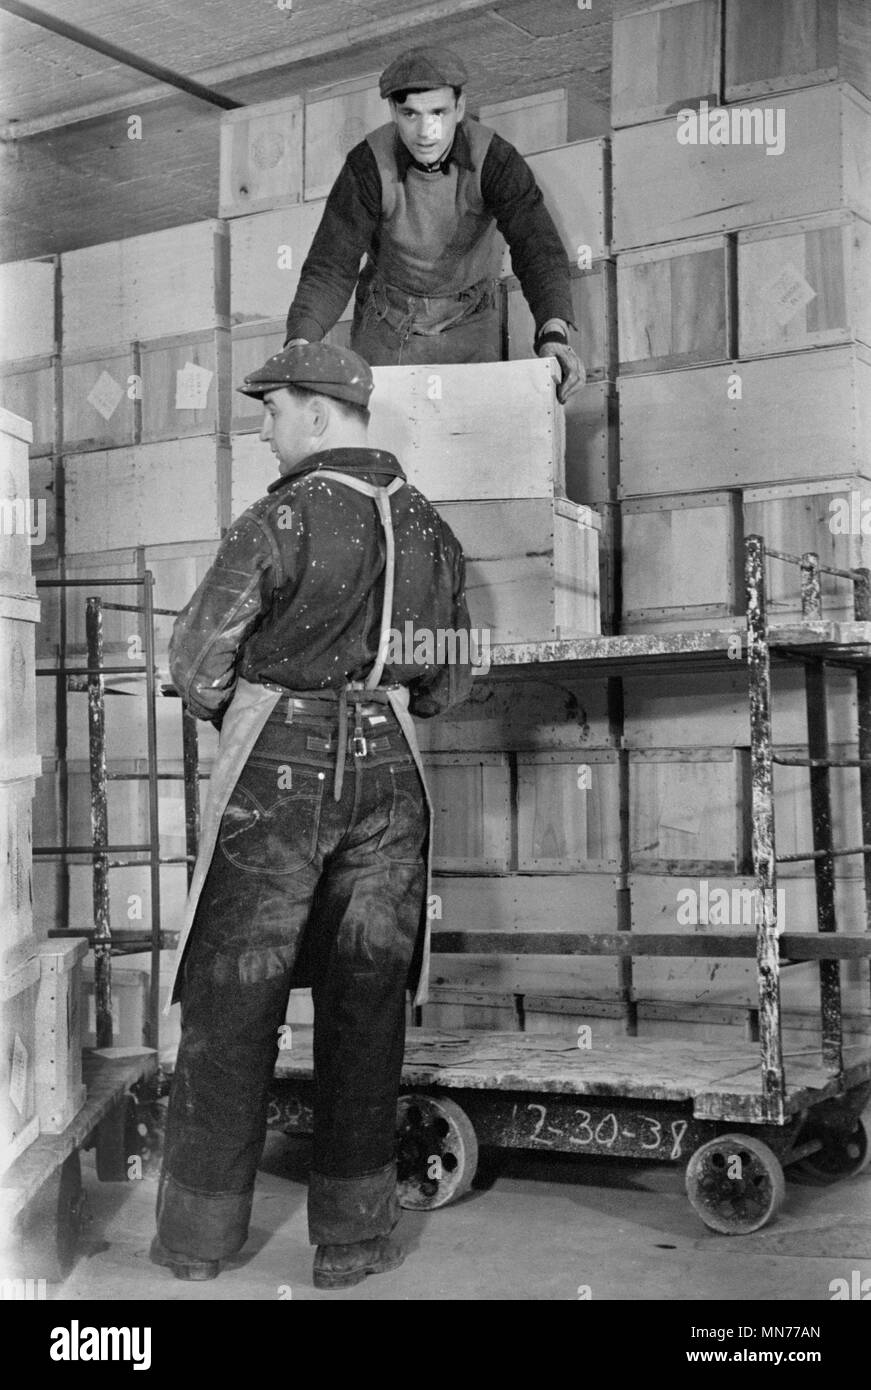 Two Workers Storing Crates of Eggs in Cold Storage Warehouse, Jersey City, New Jersey, USA, Arthur Rothstein for Farm Security Administration, January 1939 - Stock Image